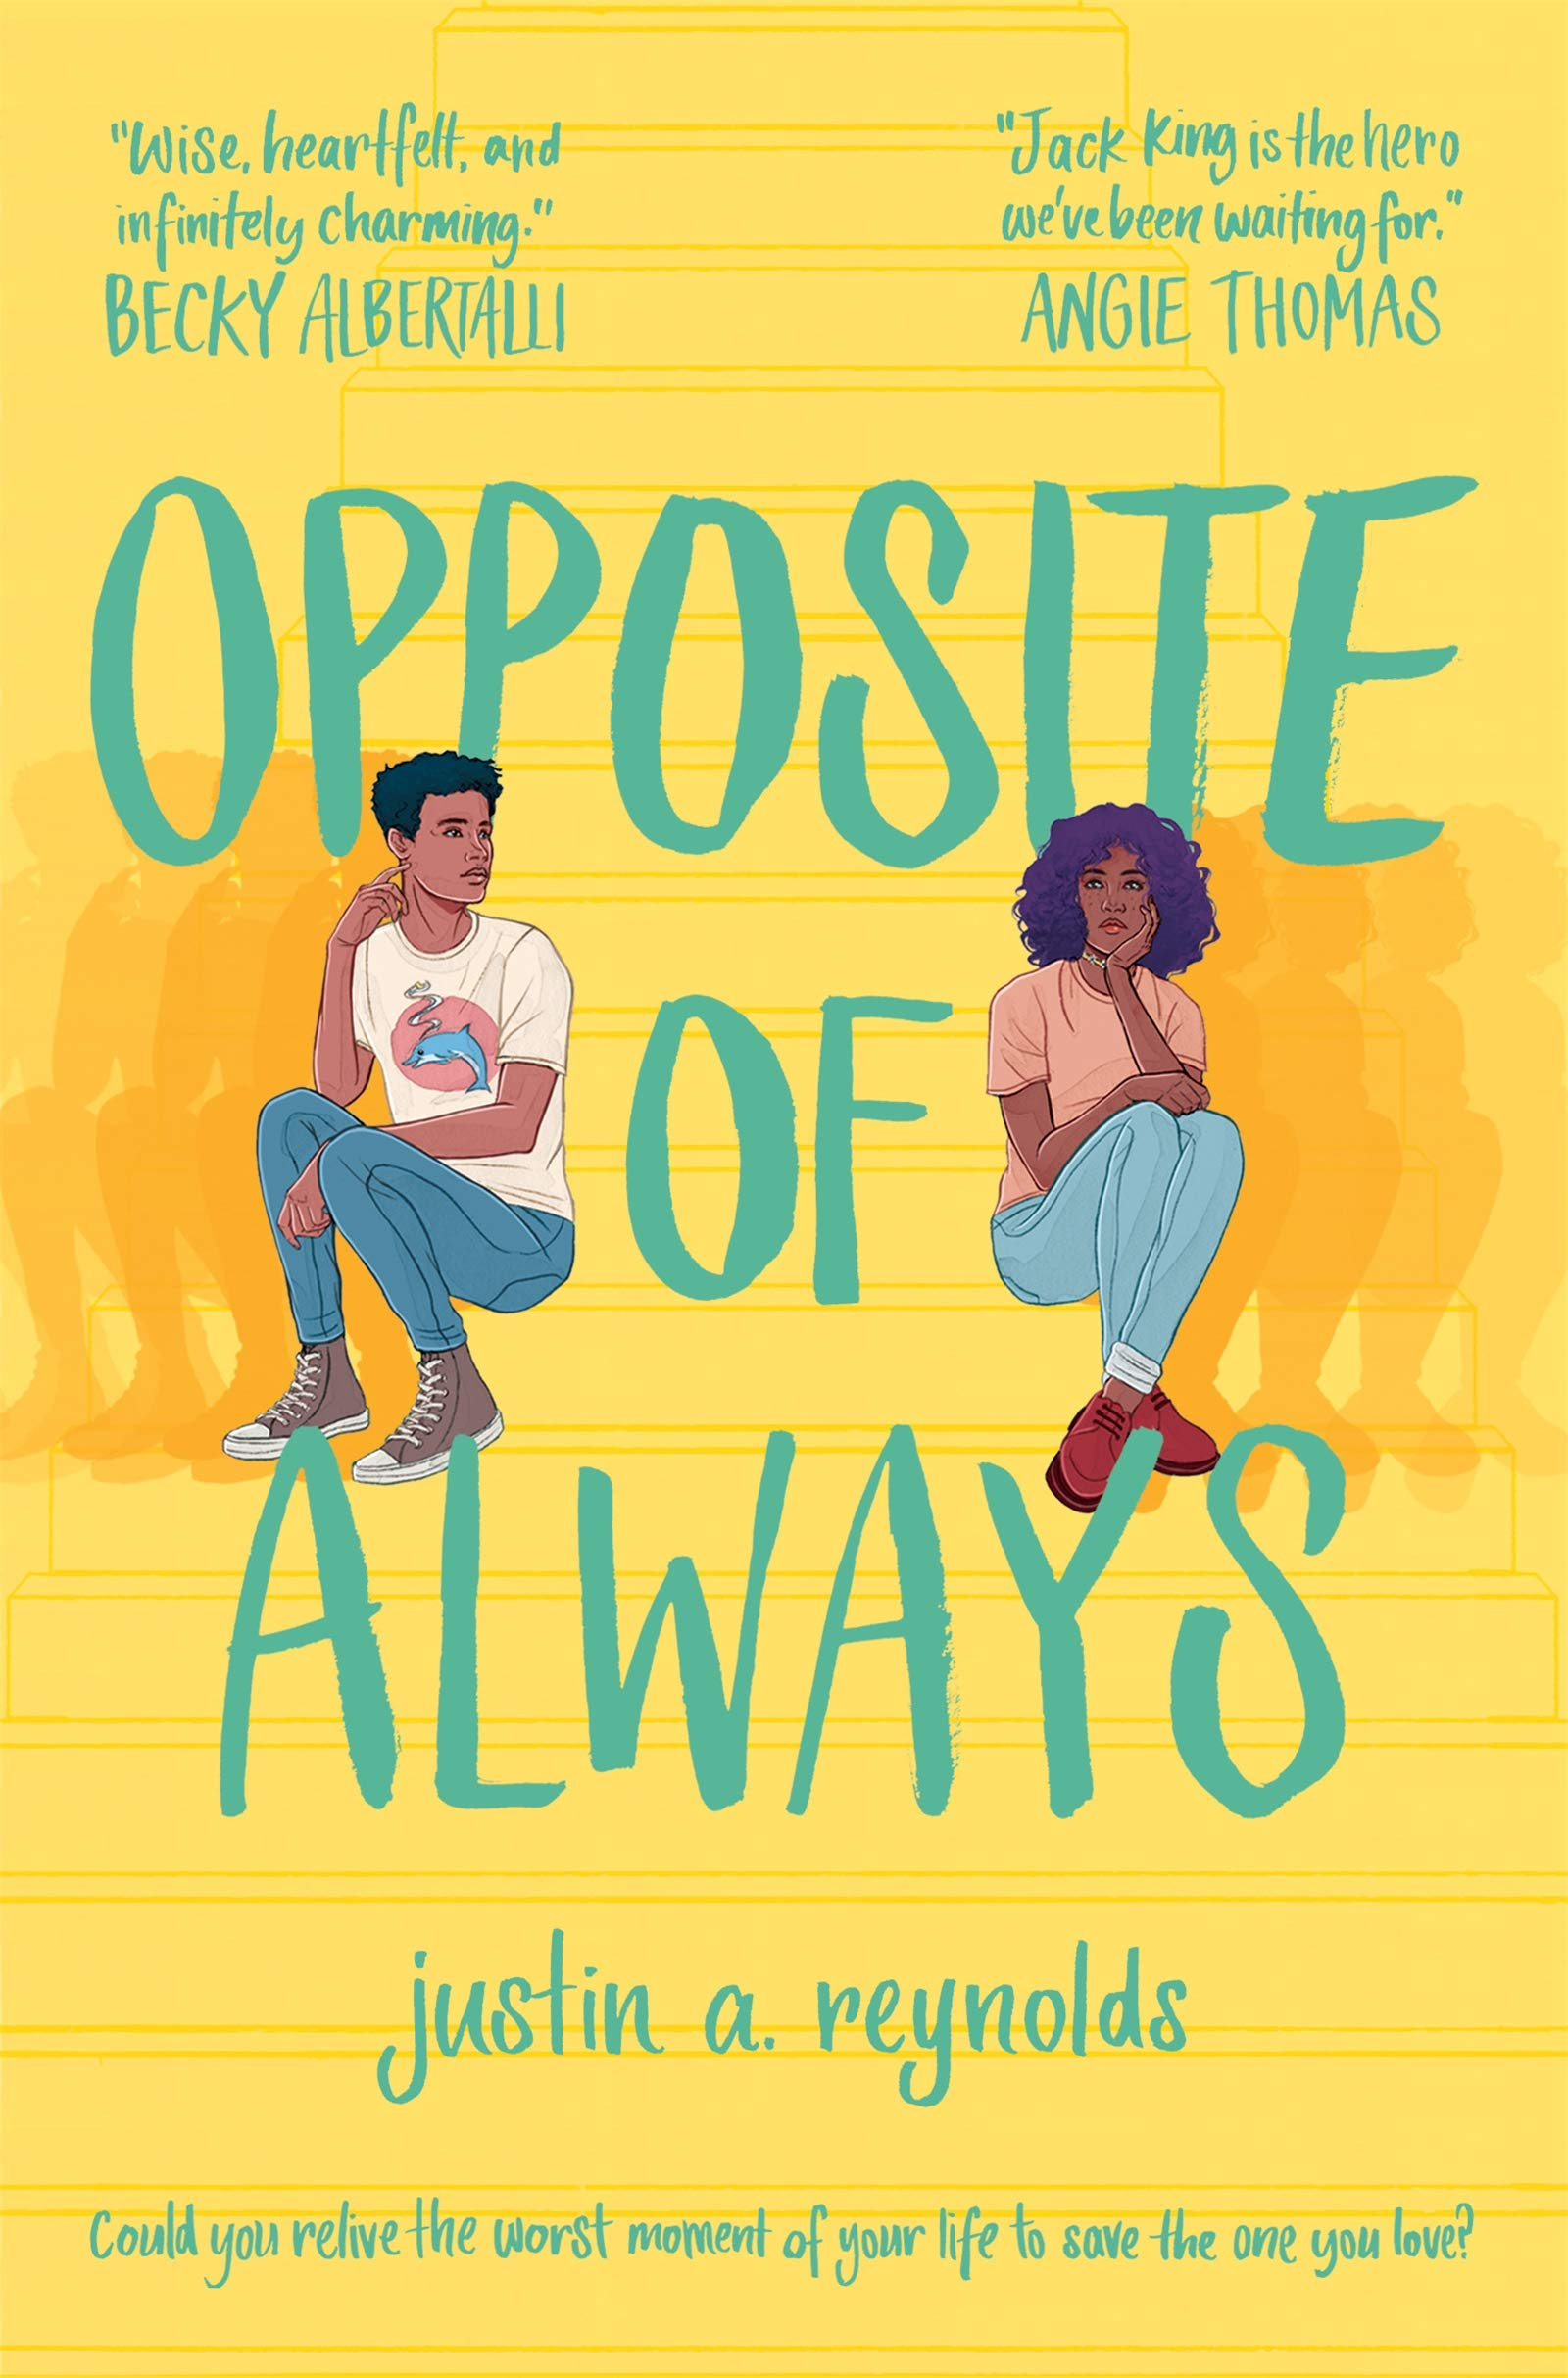 Amazon.com: Opposite of Always (9781509870042): Reynolds, Justin: Books